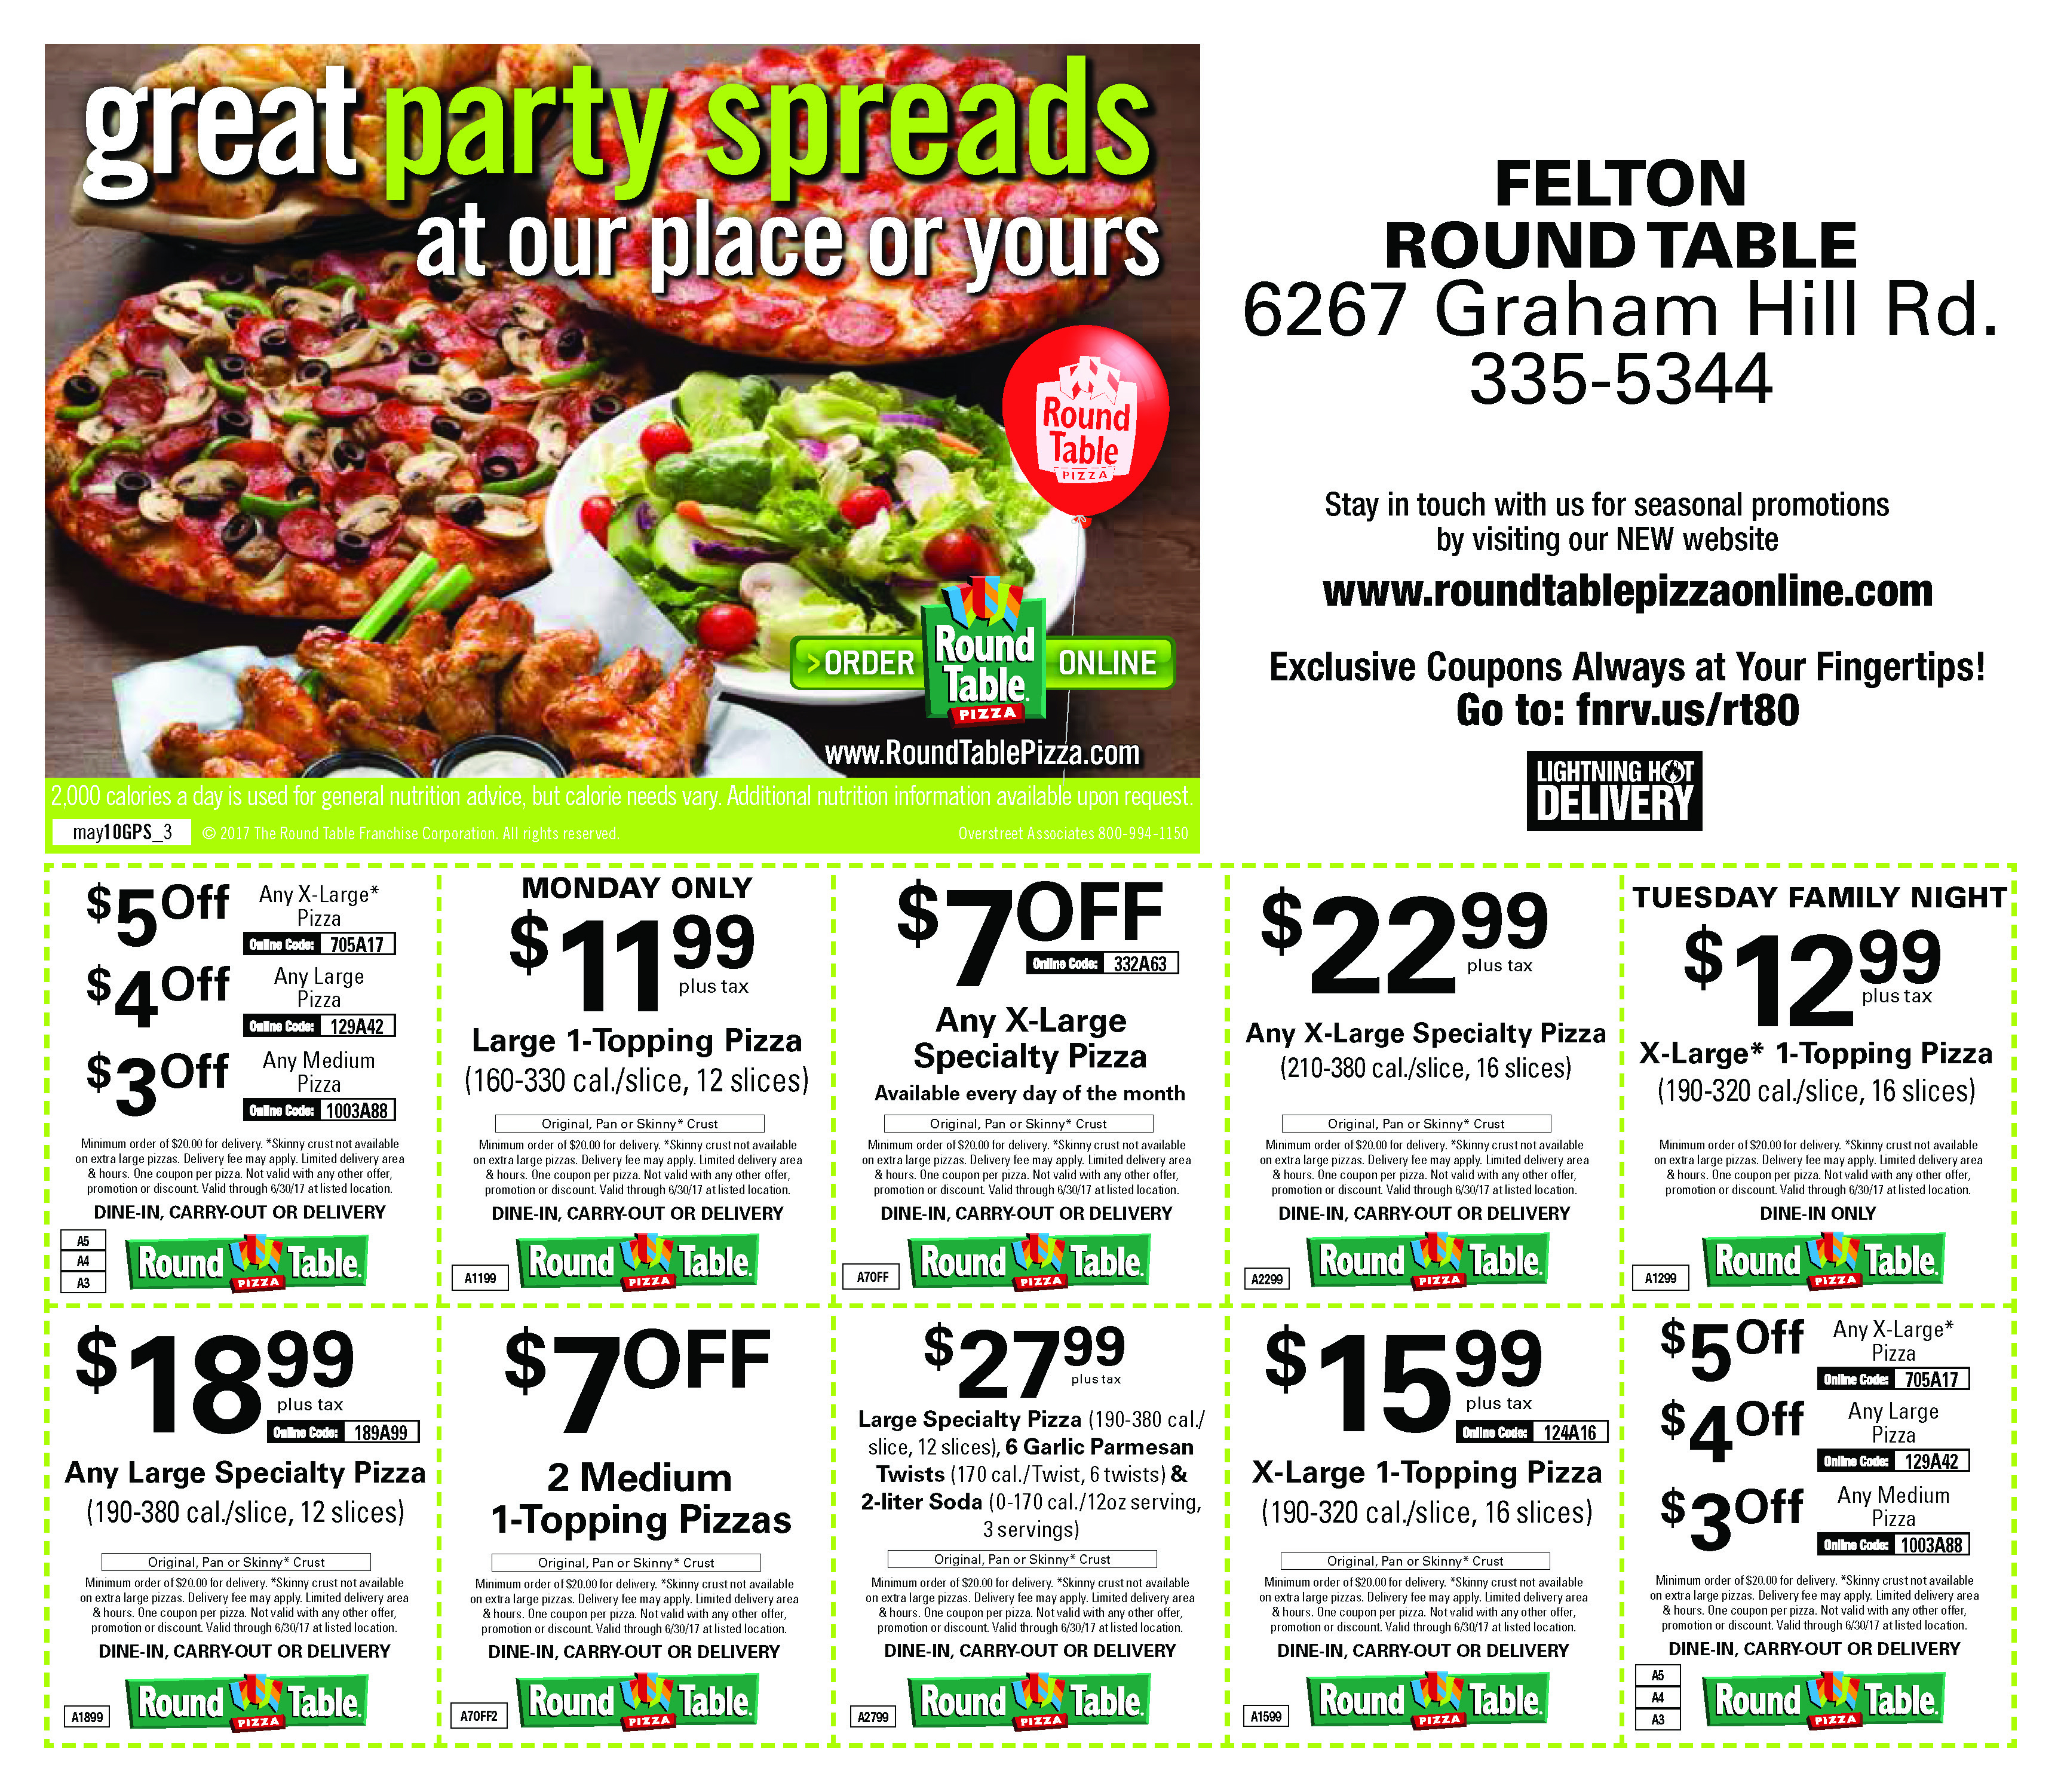 Round Table Pizza Printable Coupons 2018 - Staples Coupon 73144 - Free Printable Round Table Pizza Coupons